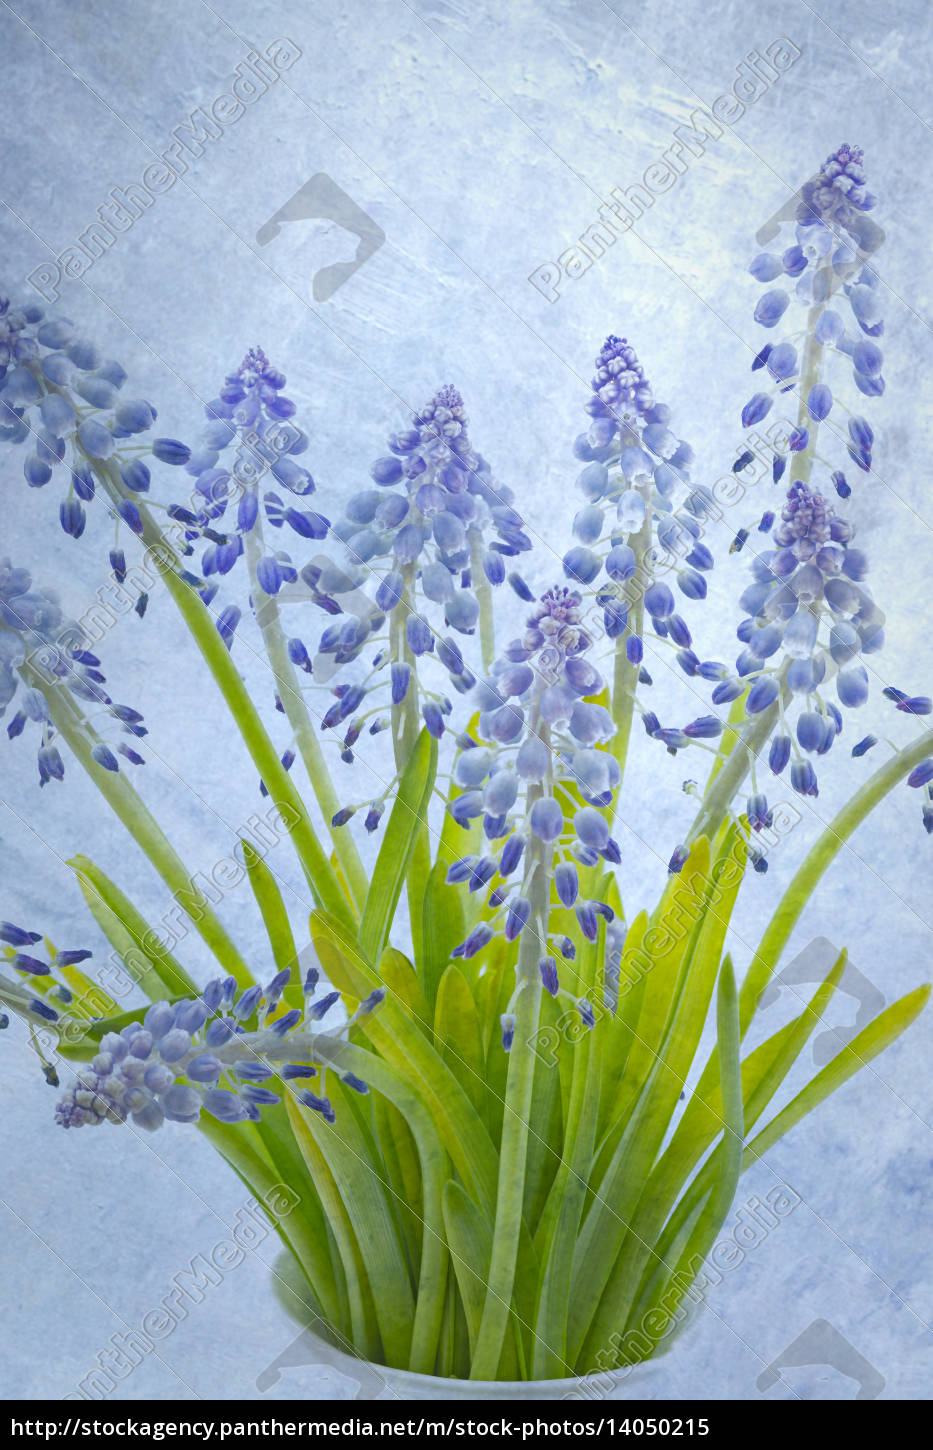 grape, hyacinths, with, superimposed, texture - 14050215